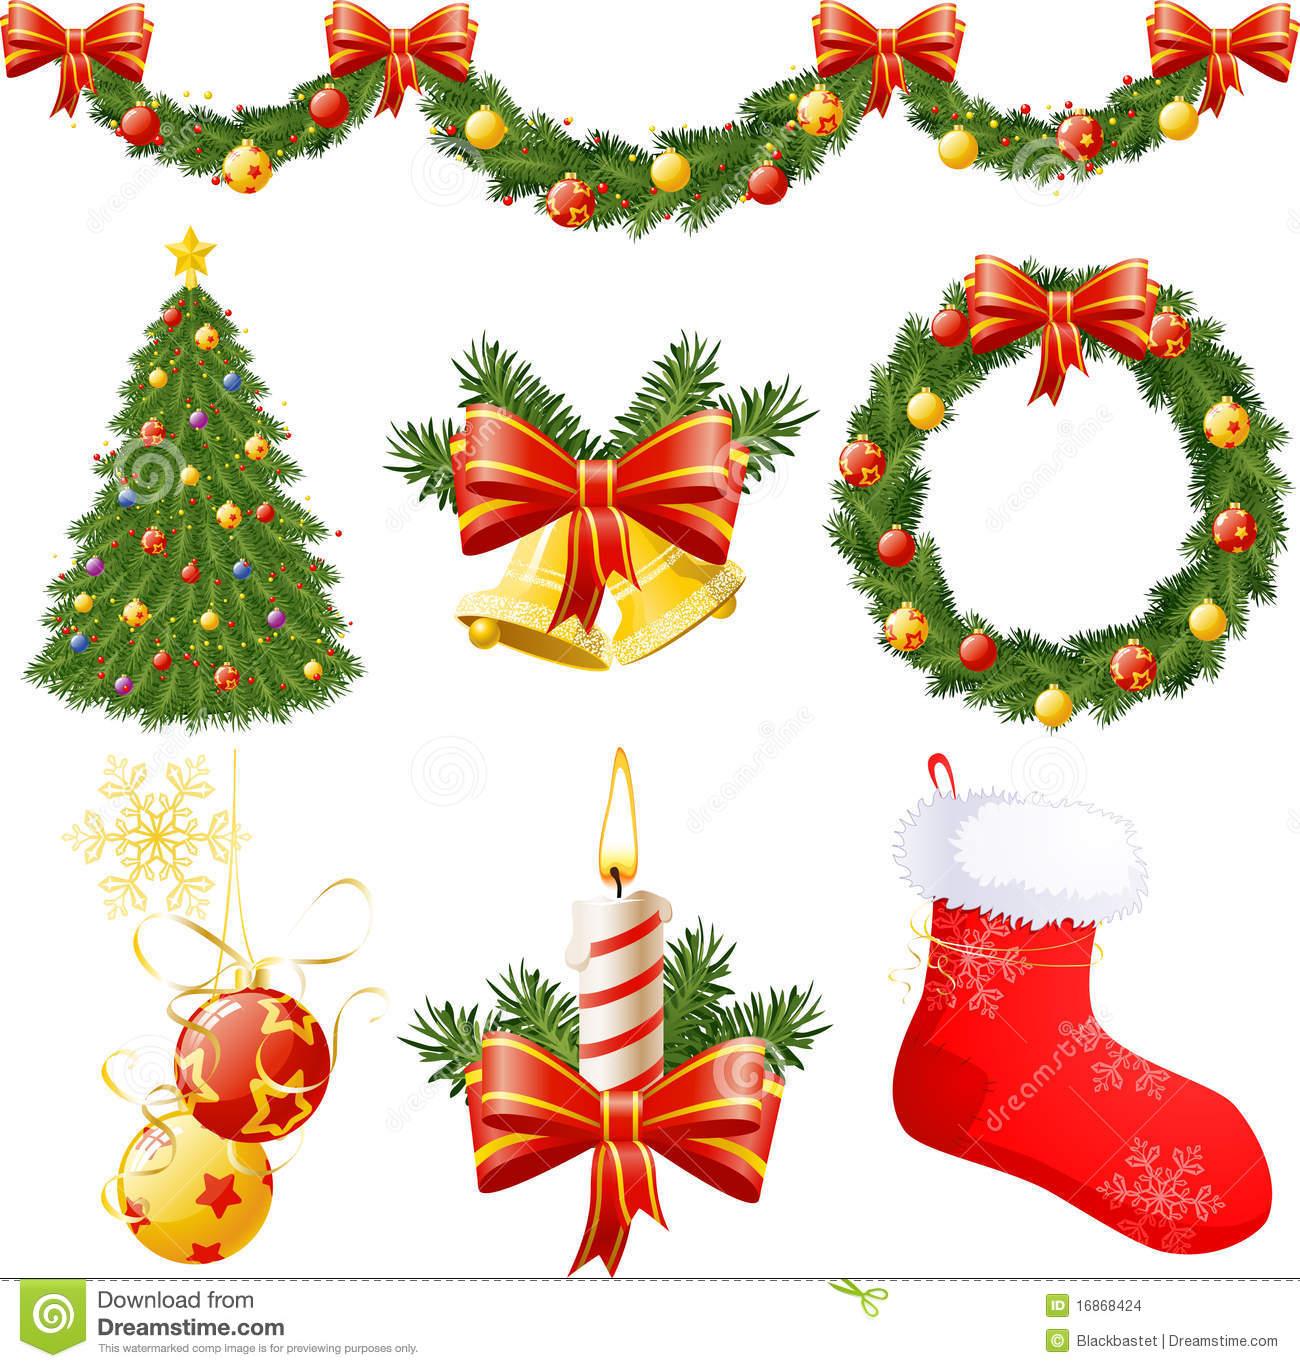 Pictures Of Christmas Decorations Christmas Decorations Stock Images  Image 16868424